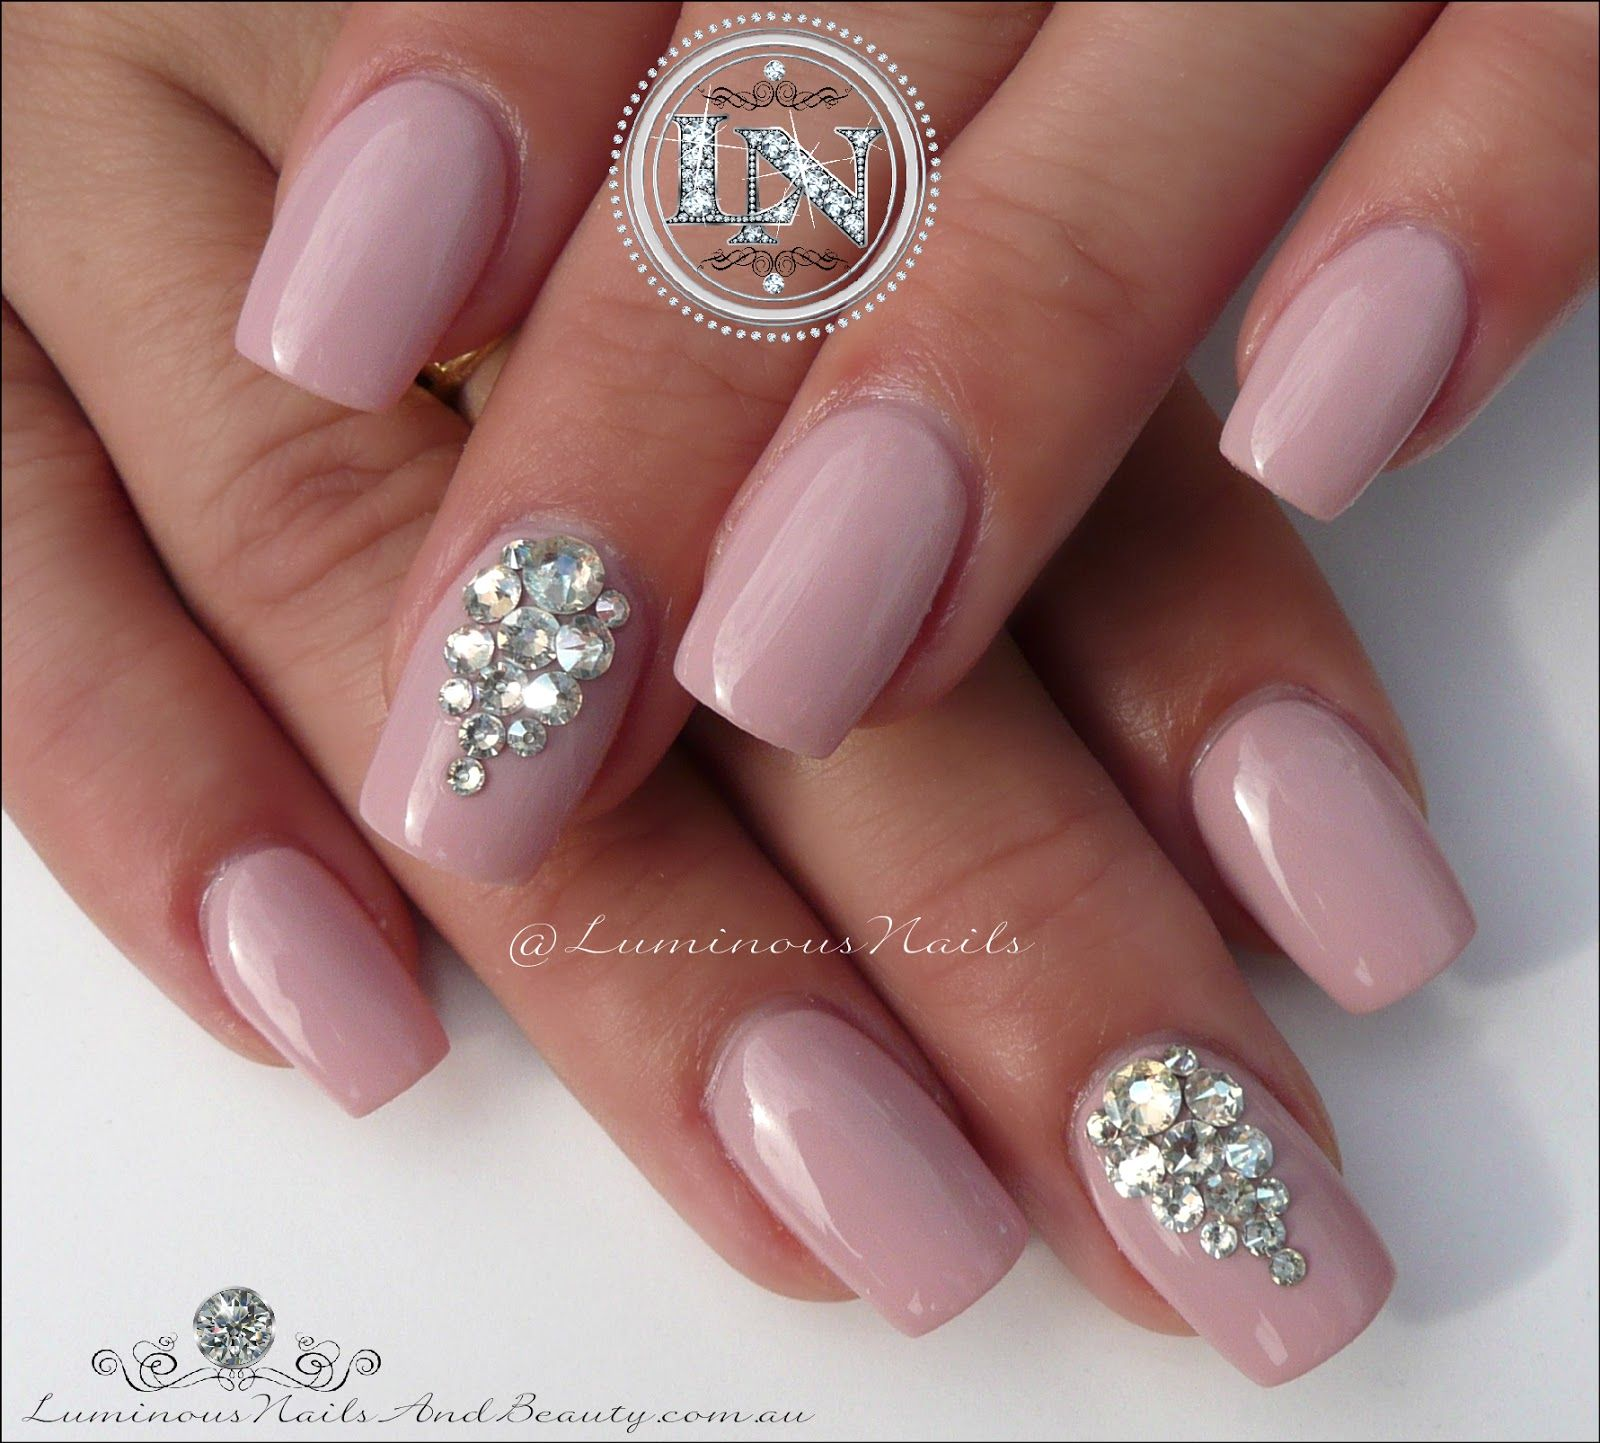 Crystal Gel Nail Video: Luminous Nails: Bridal Nails With Swarovski Crystals